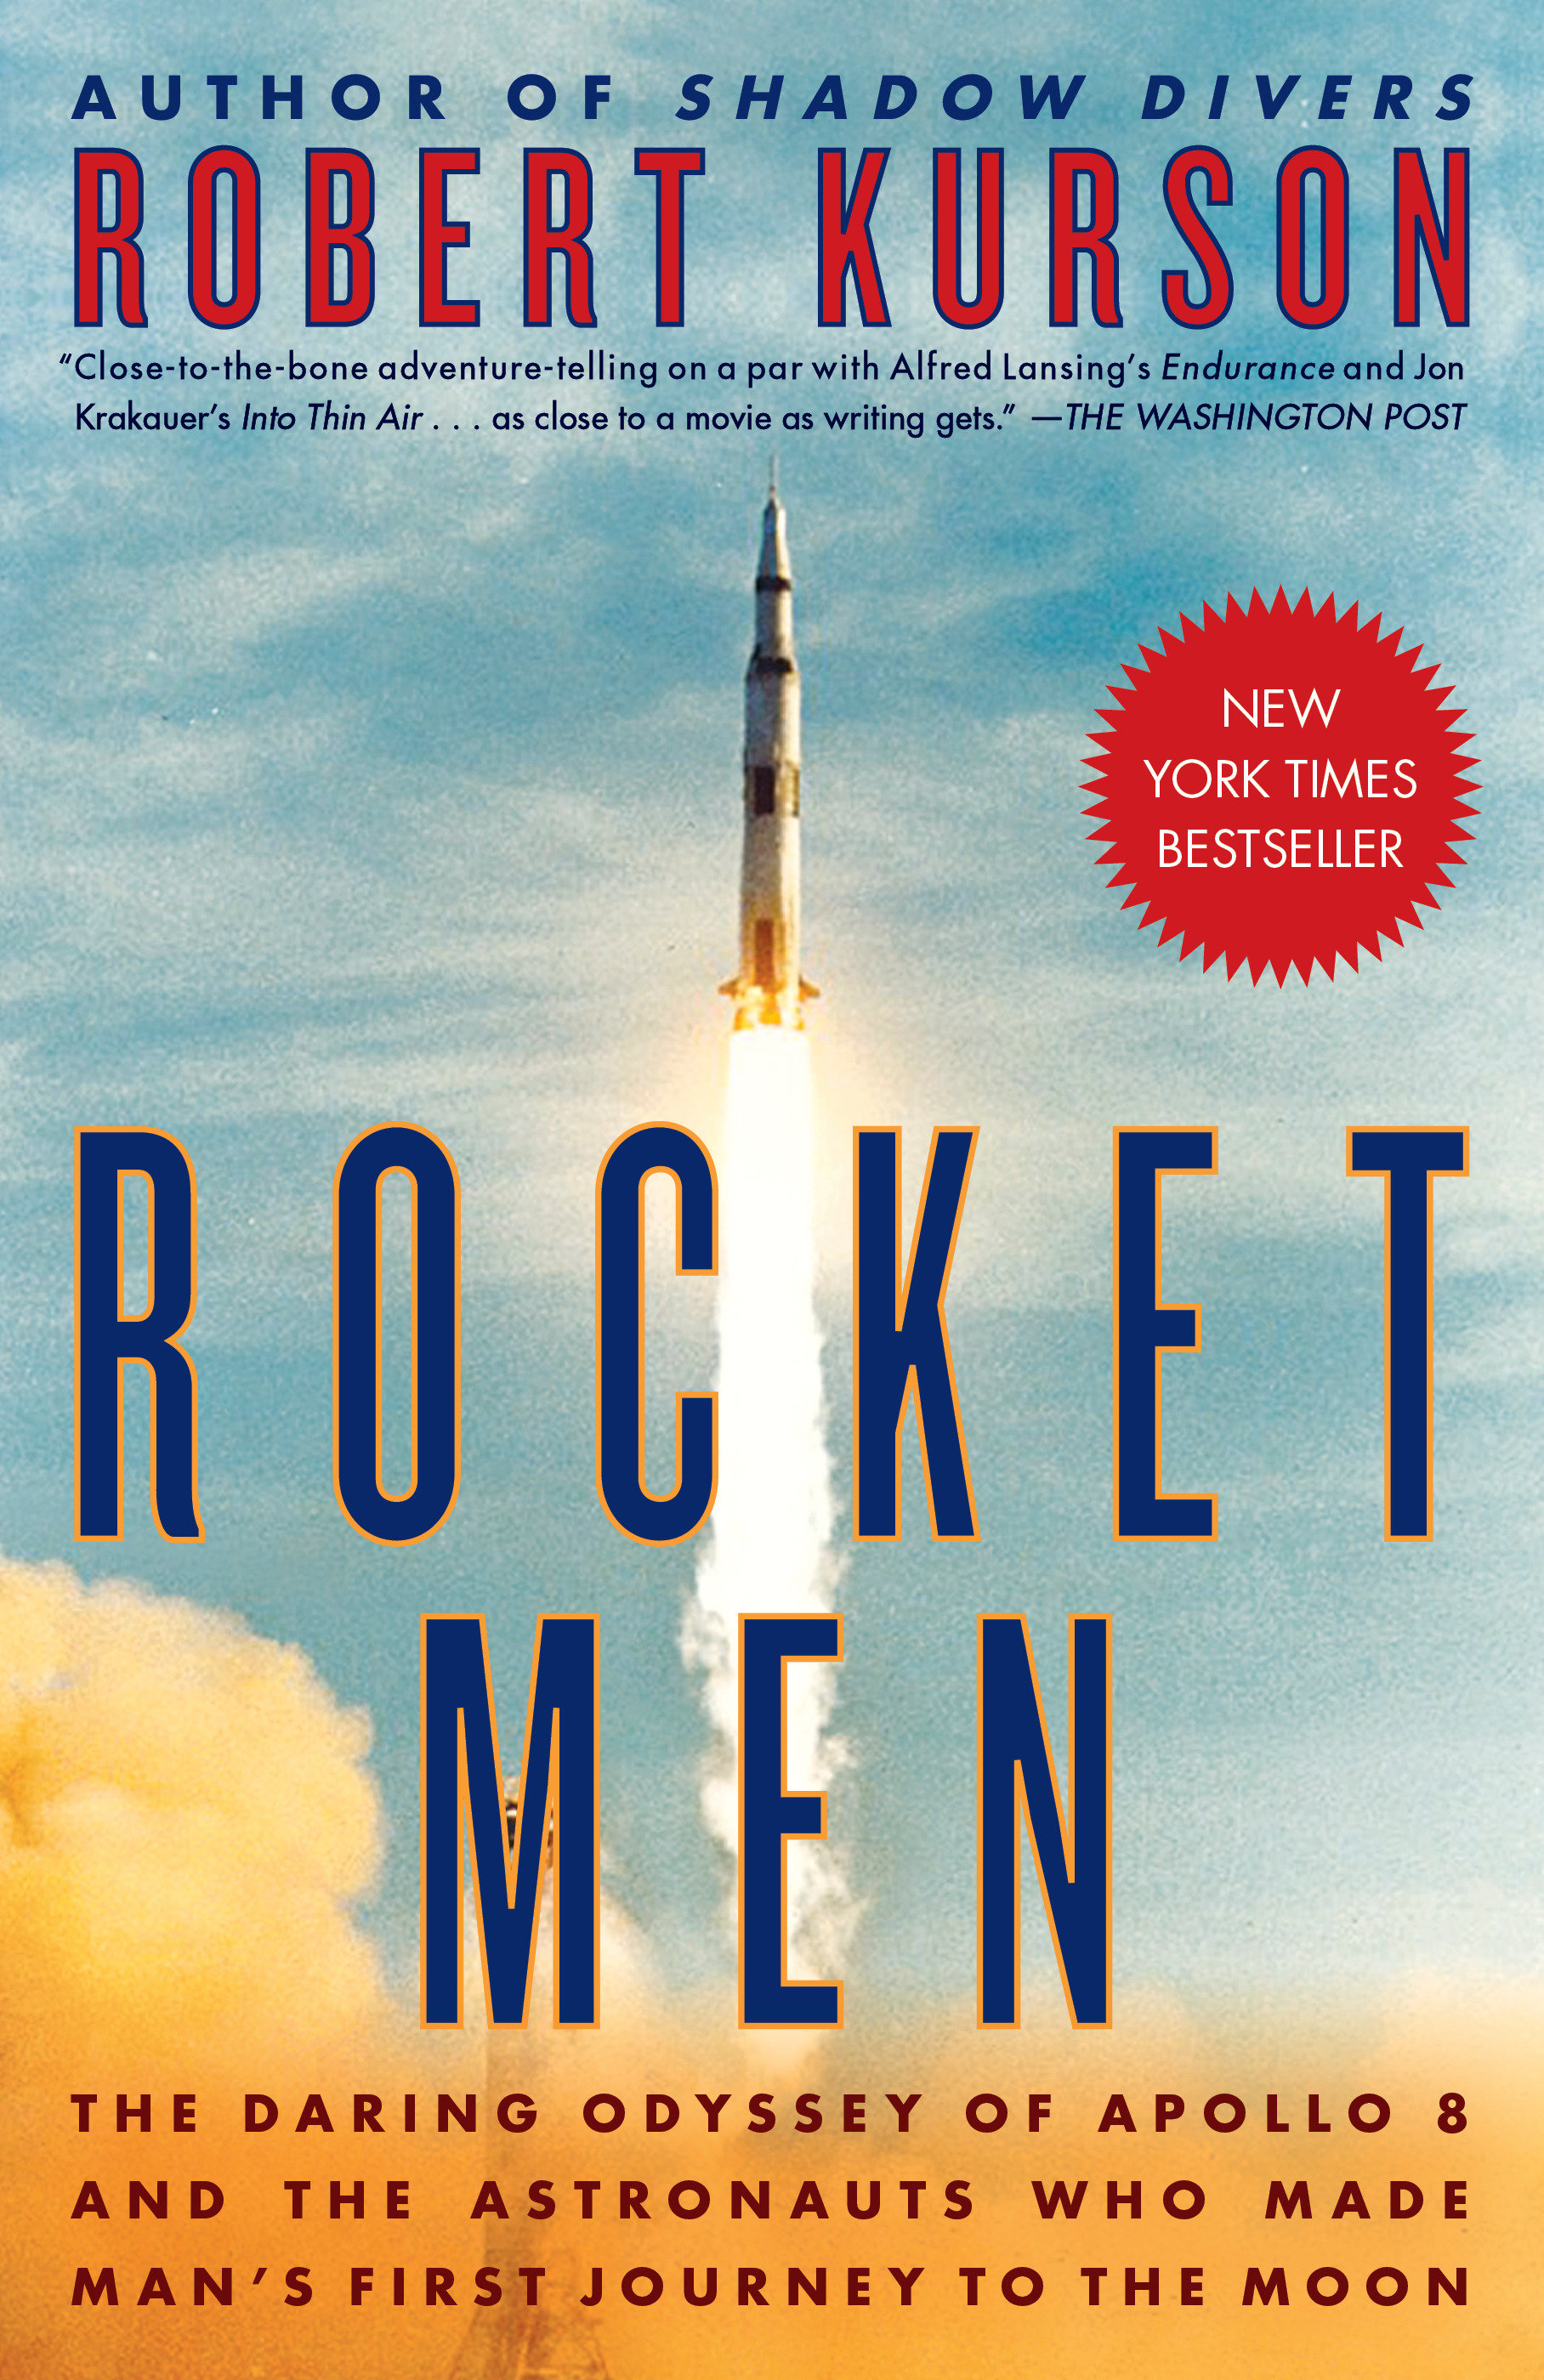 Rocket Men [electronic resource] : The Daring Odyssey of Apollo 8 and the Astronauts Who Made Man's First Journey to the Moon